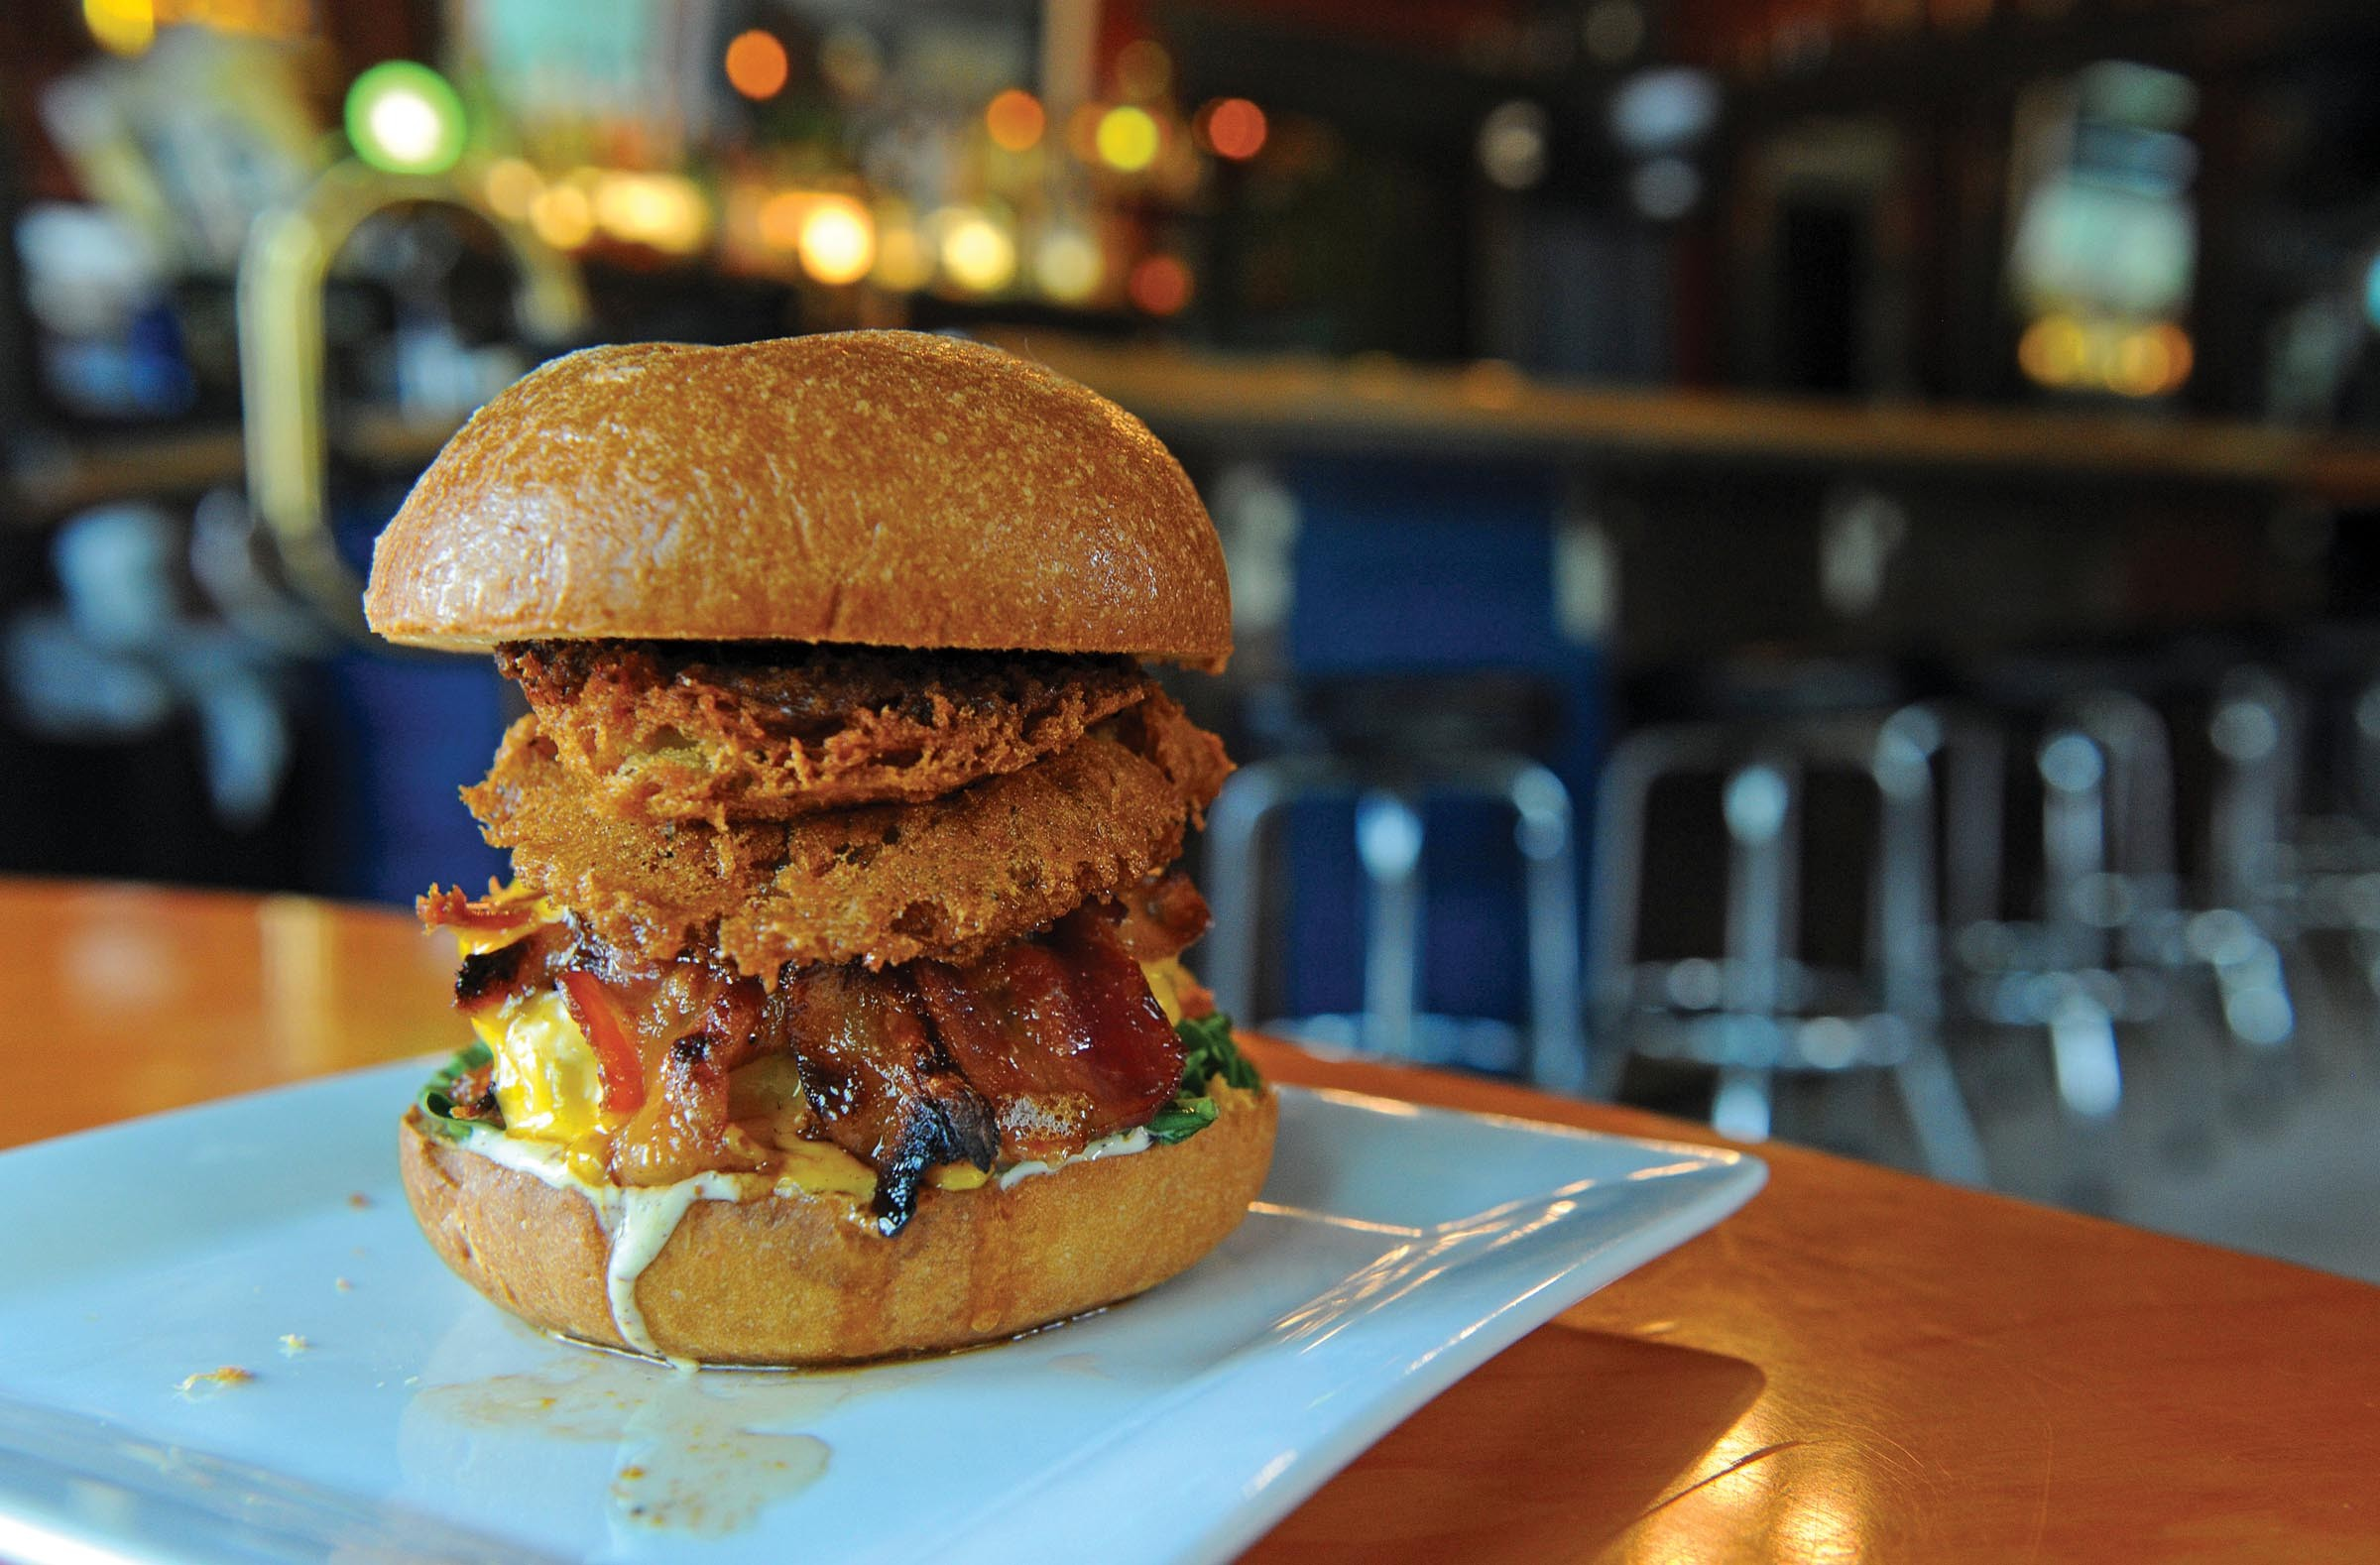 The Henry Bain burger at the Well puts an onion ring on brioche to heighten the experience. - SCOTT ELMQUIST